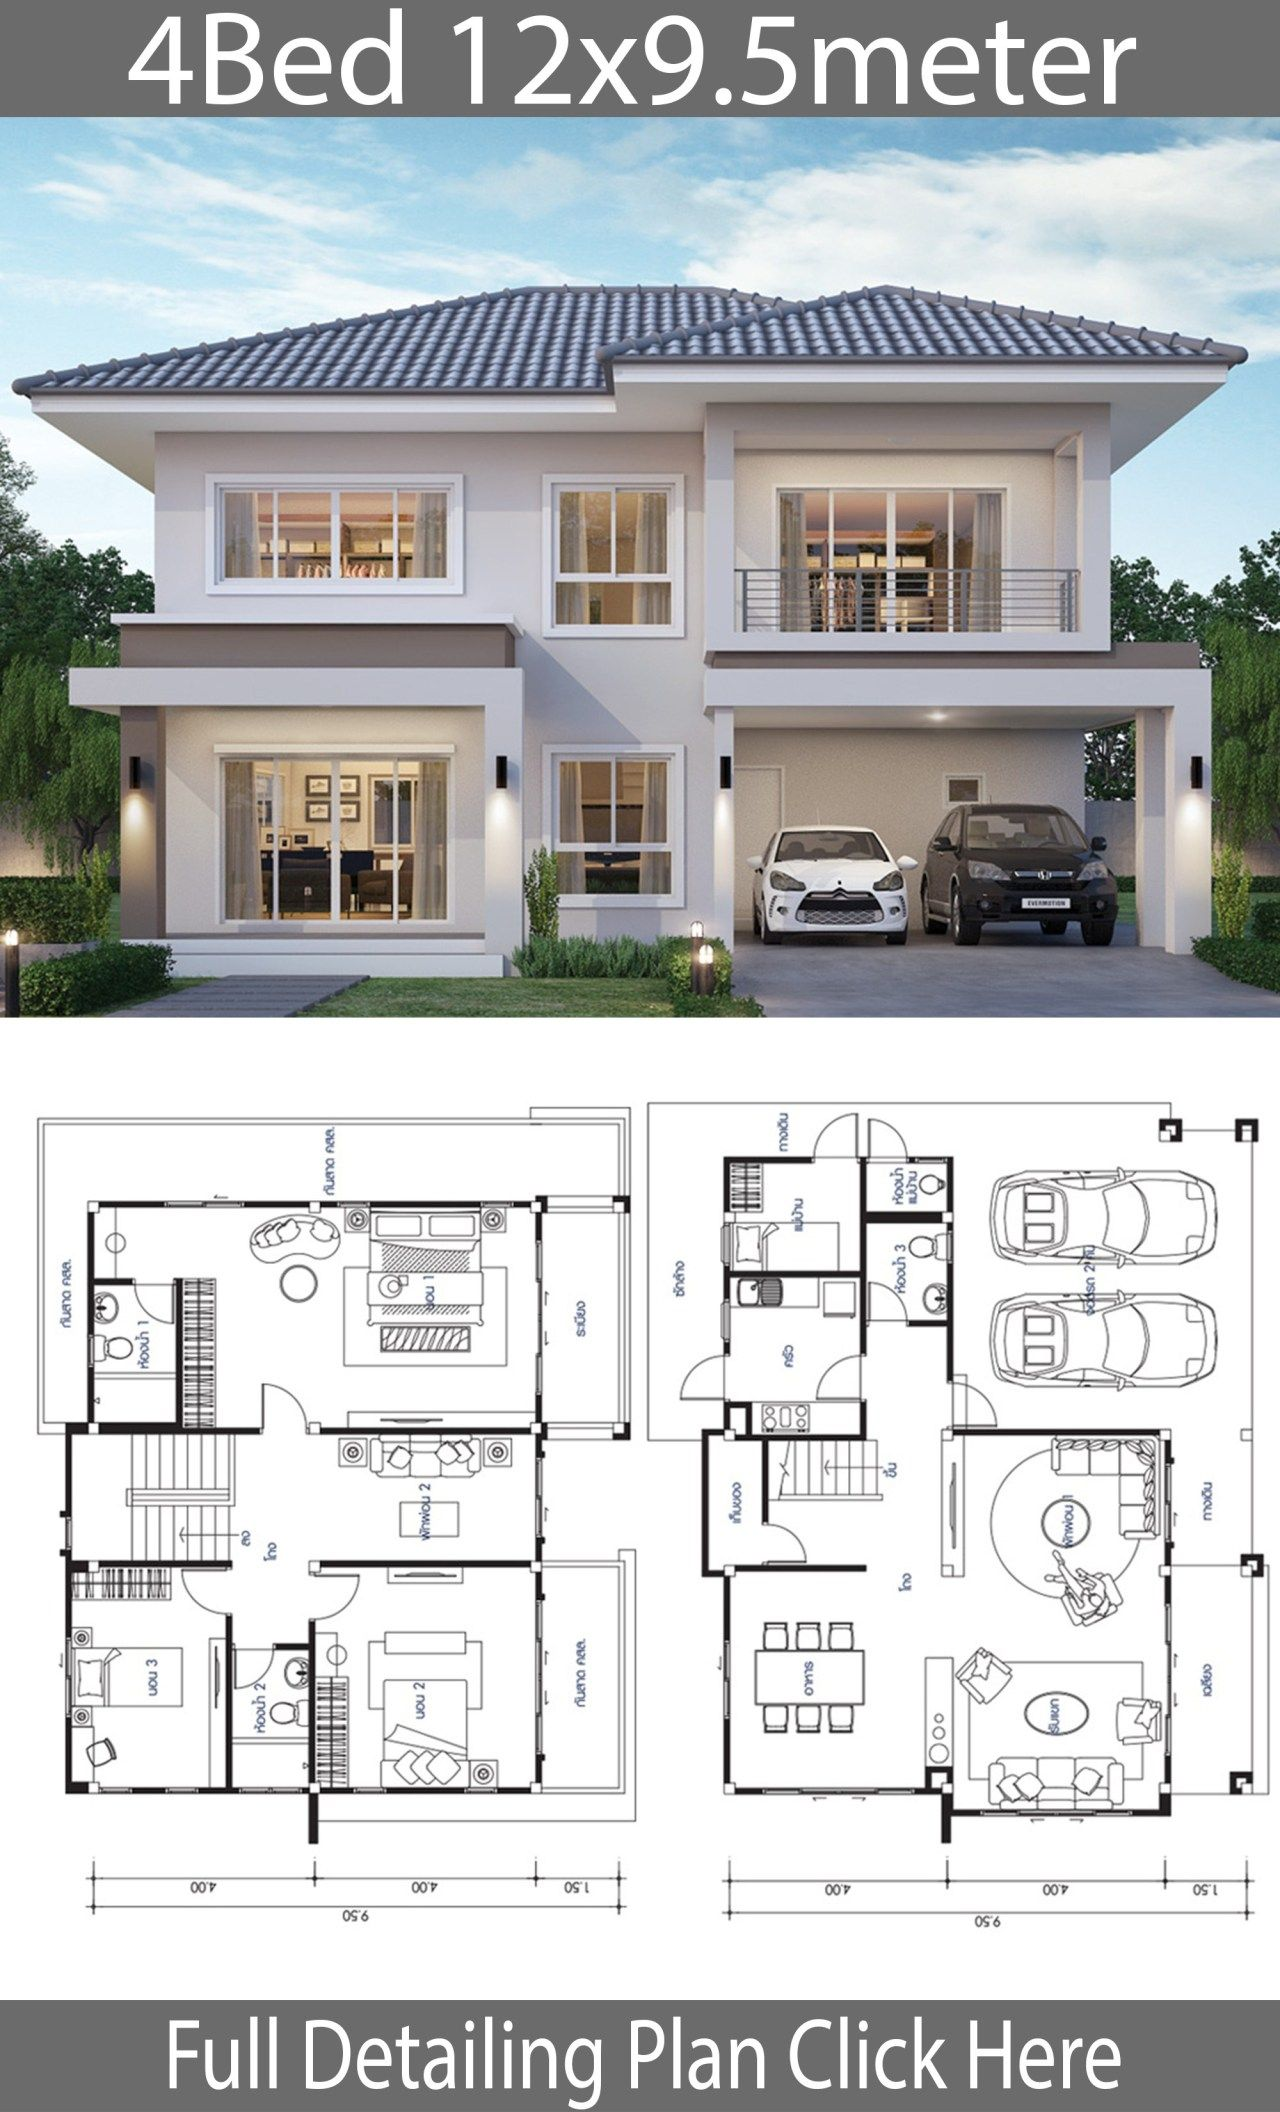 House Design Plan 12x9 5m With 4 Bedrooms Home Ideas Architectural House Plans 2 Storey House Design 4 Bedroom House Designs